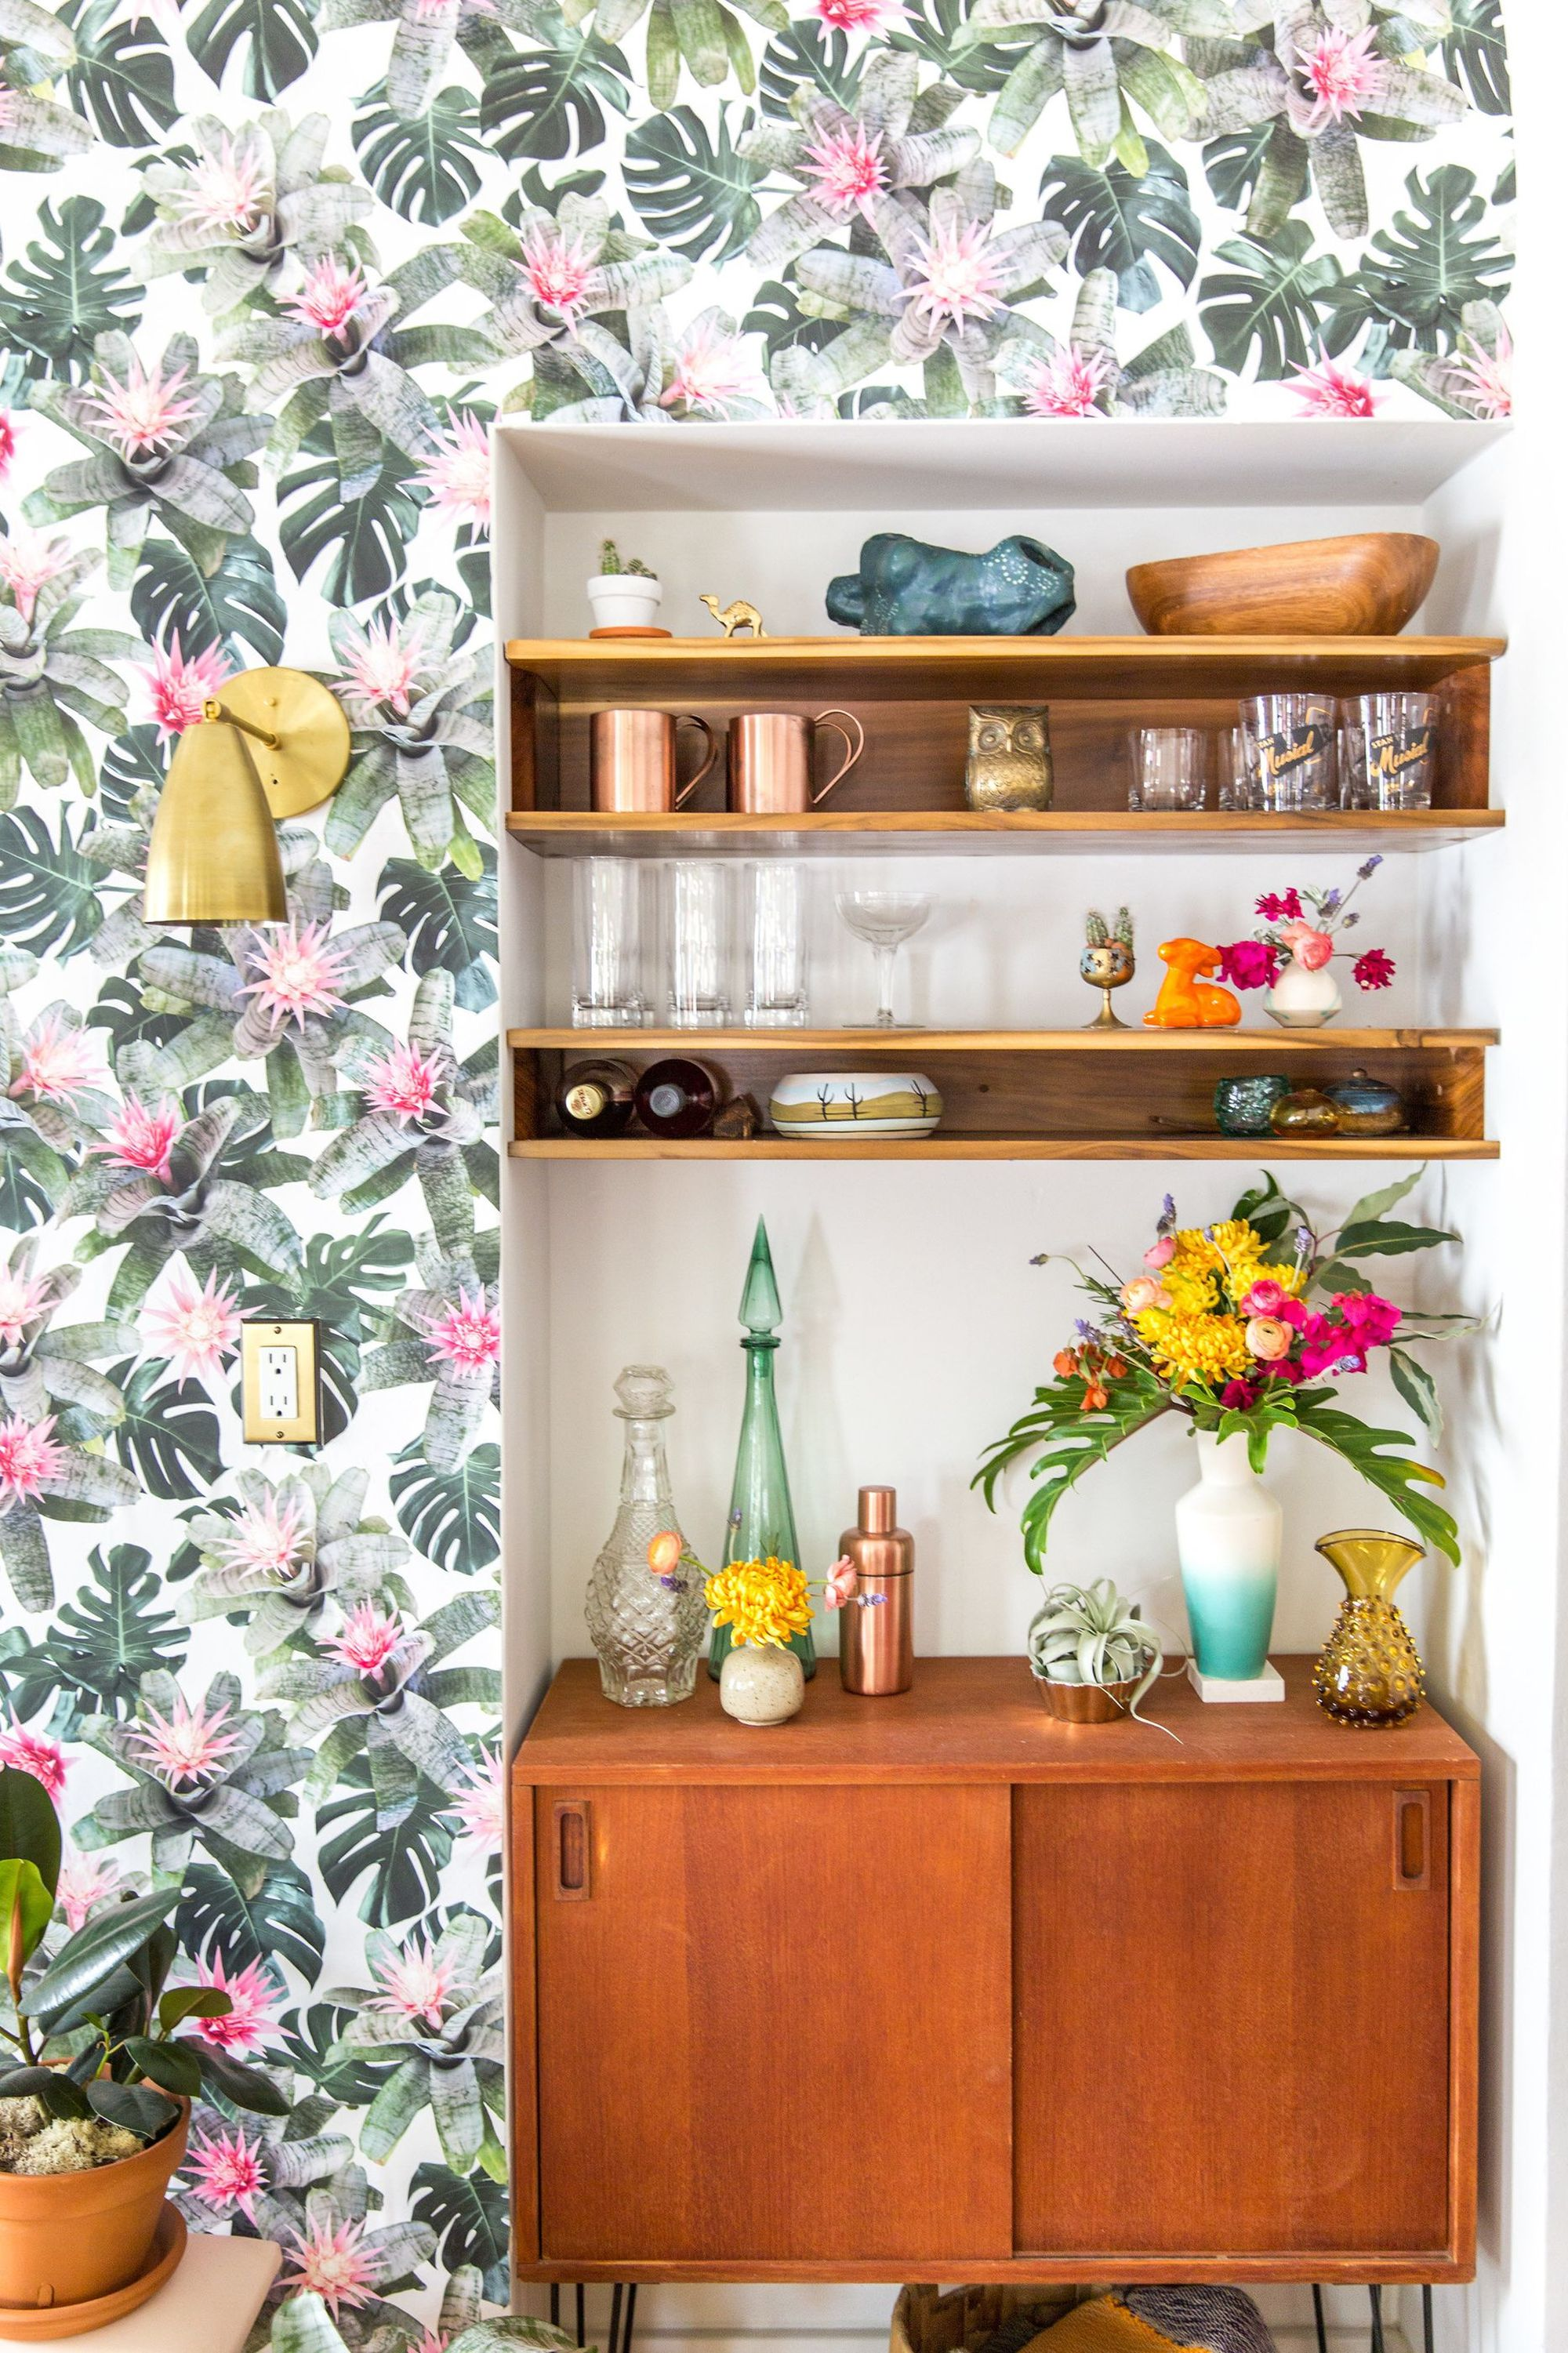 How to Make Open Shelves Look Like Art—& Stay Clutter-Free